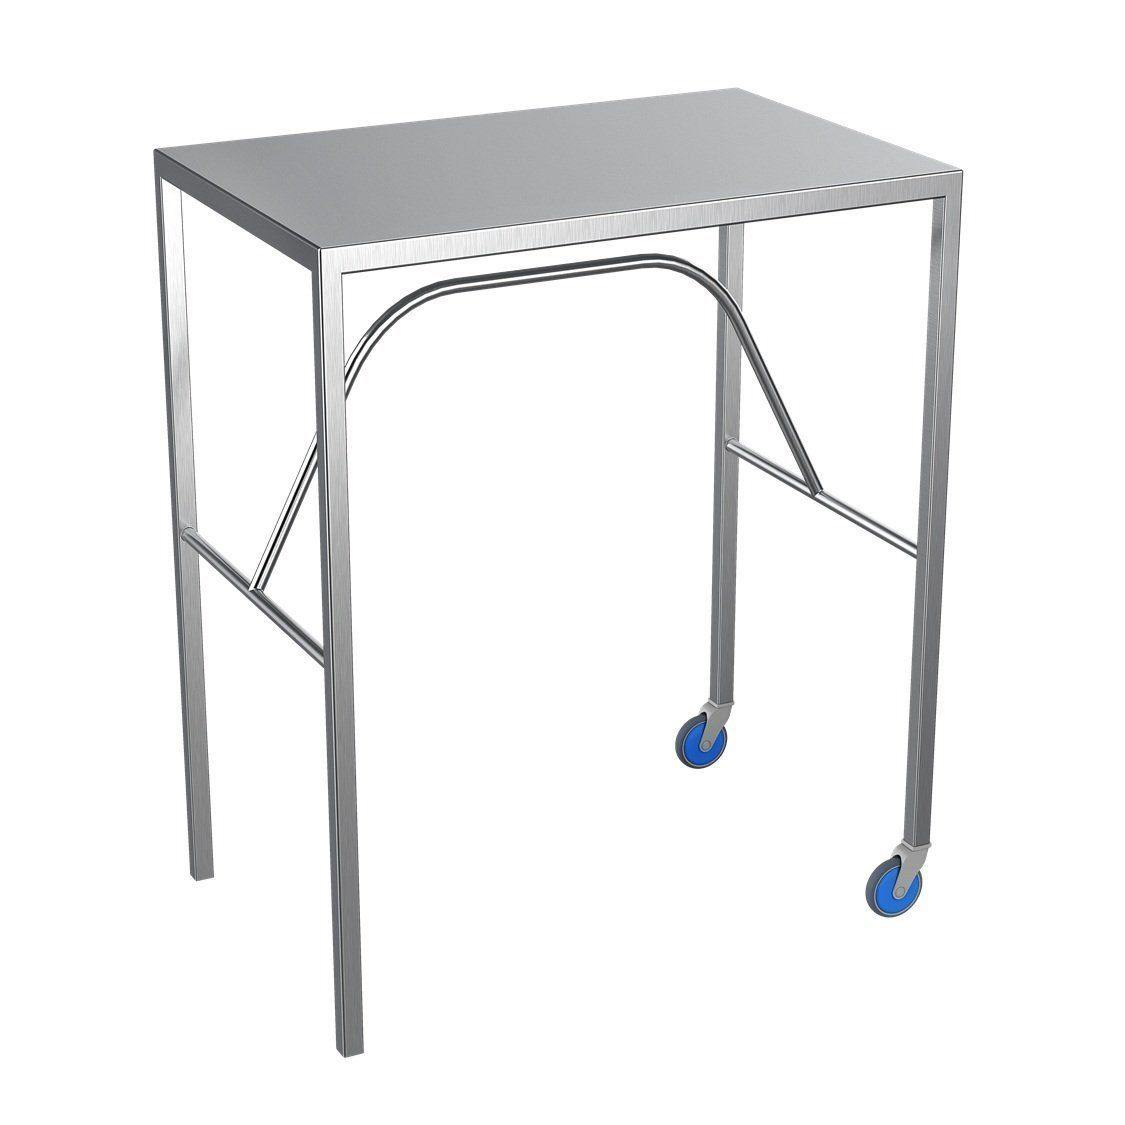 Nimble Arm Table Fixed Height 760x450x800mm - Medsales